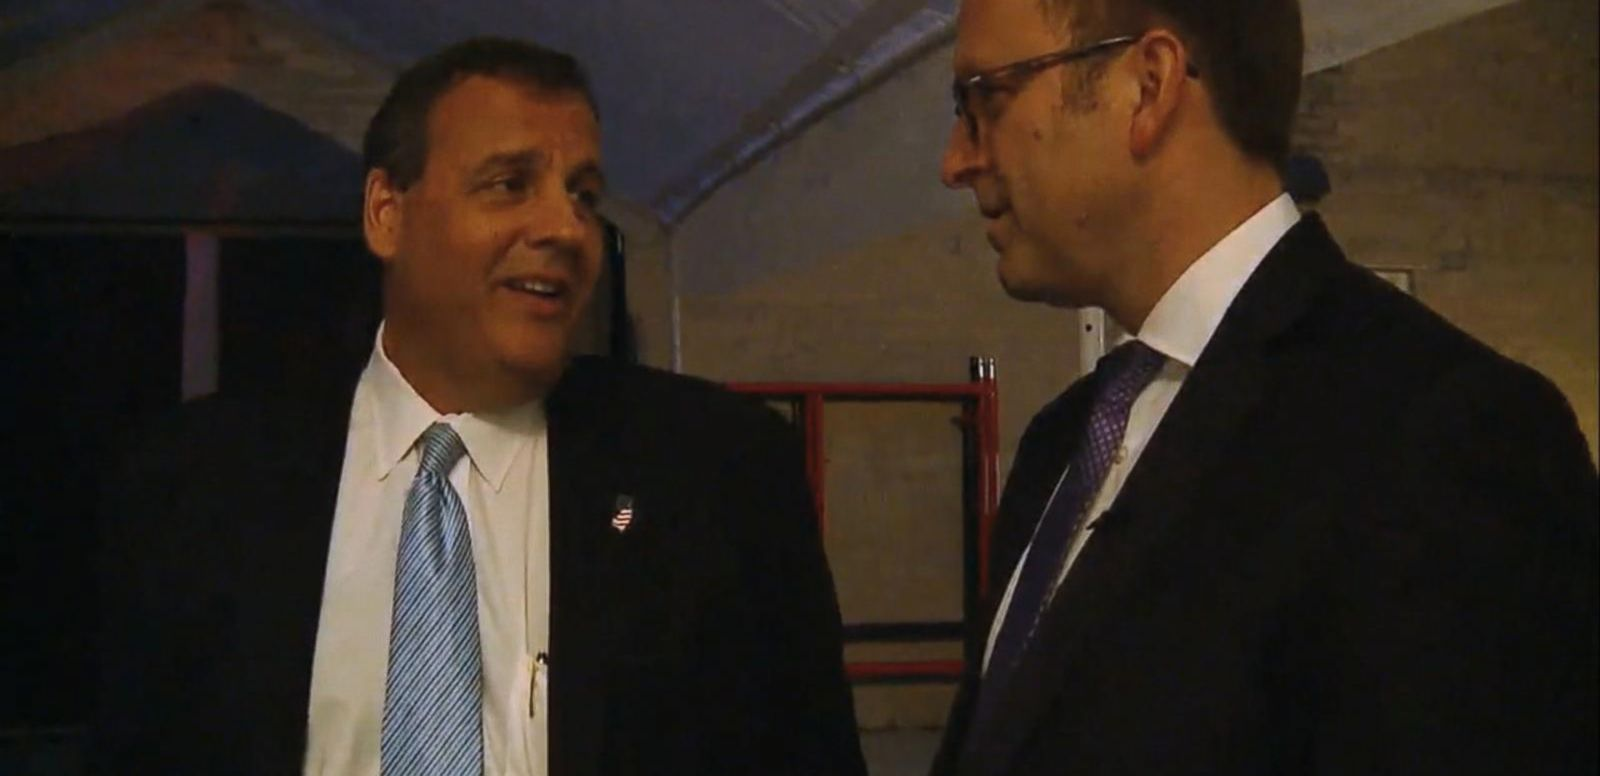 VIDEO: Can Gov. Chris Christie Compete in Iowa?